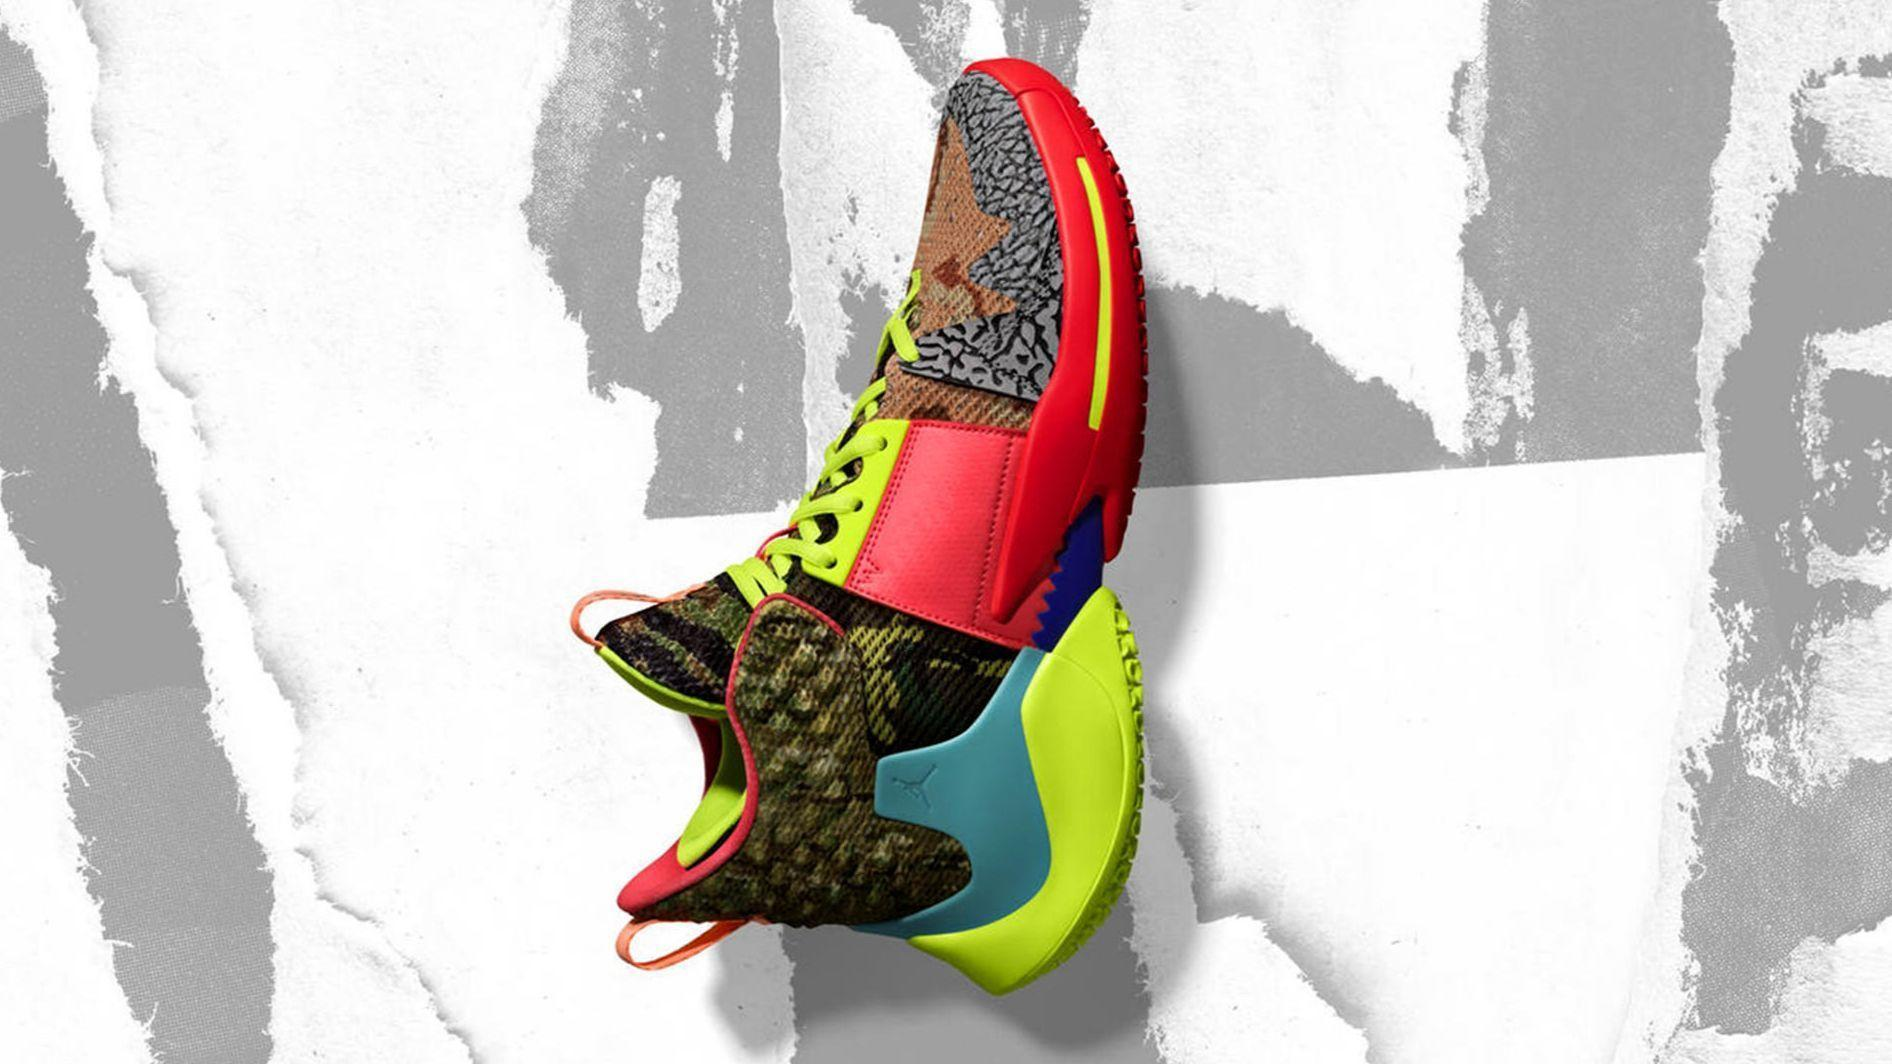 f852aa8c9e11 From  Coy Fish  to KD 11 Aunt Pearl  A look at the All-Star shoes that will  be worn at the NBA All-Star Game